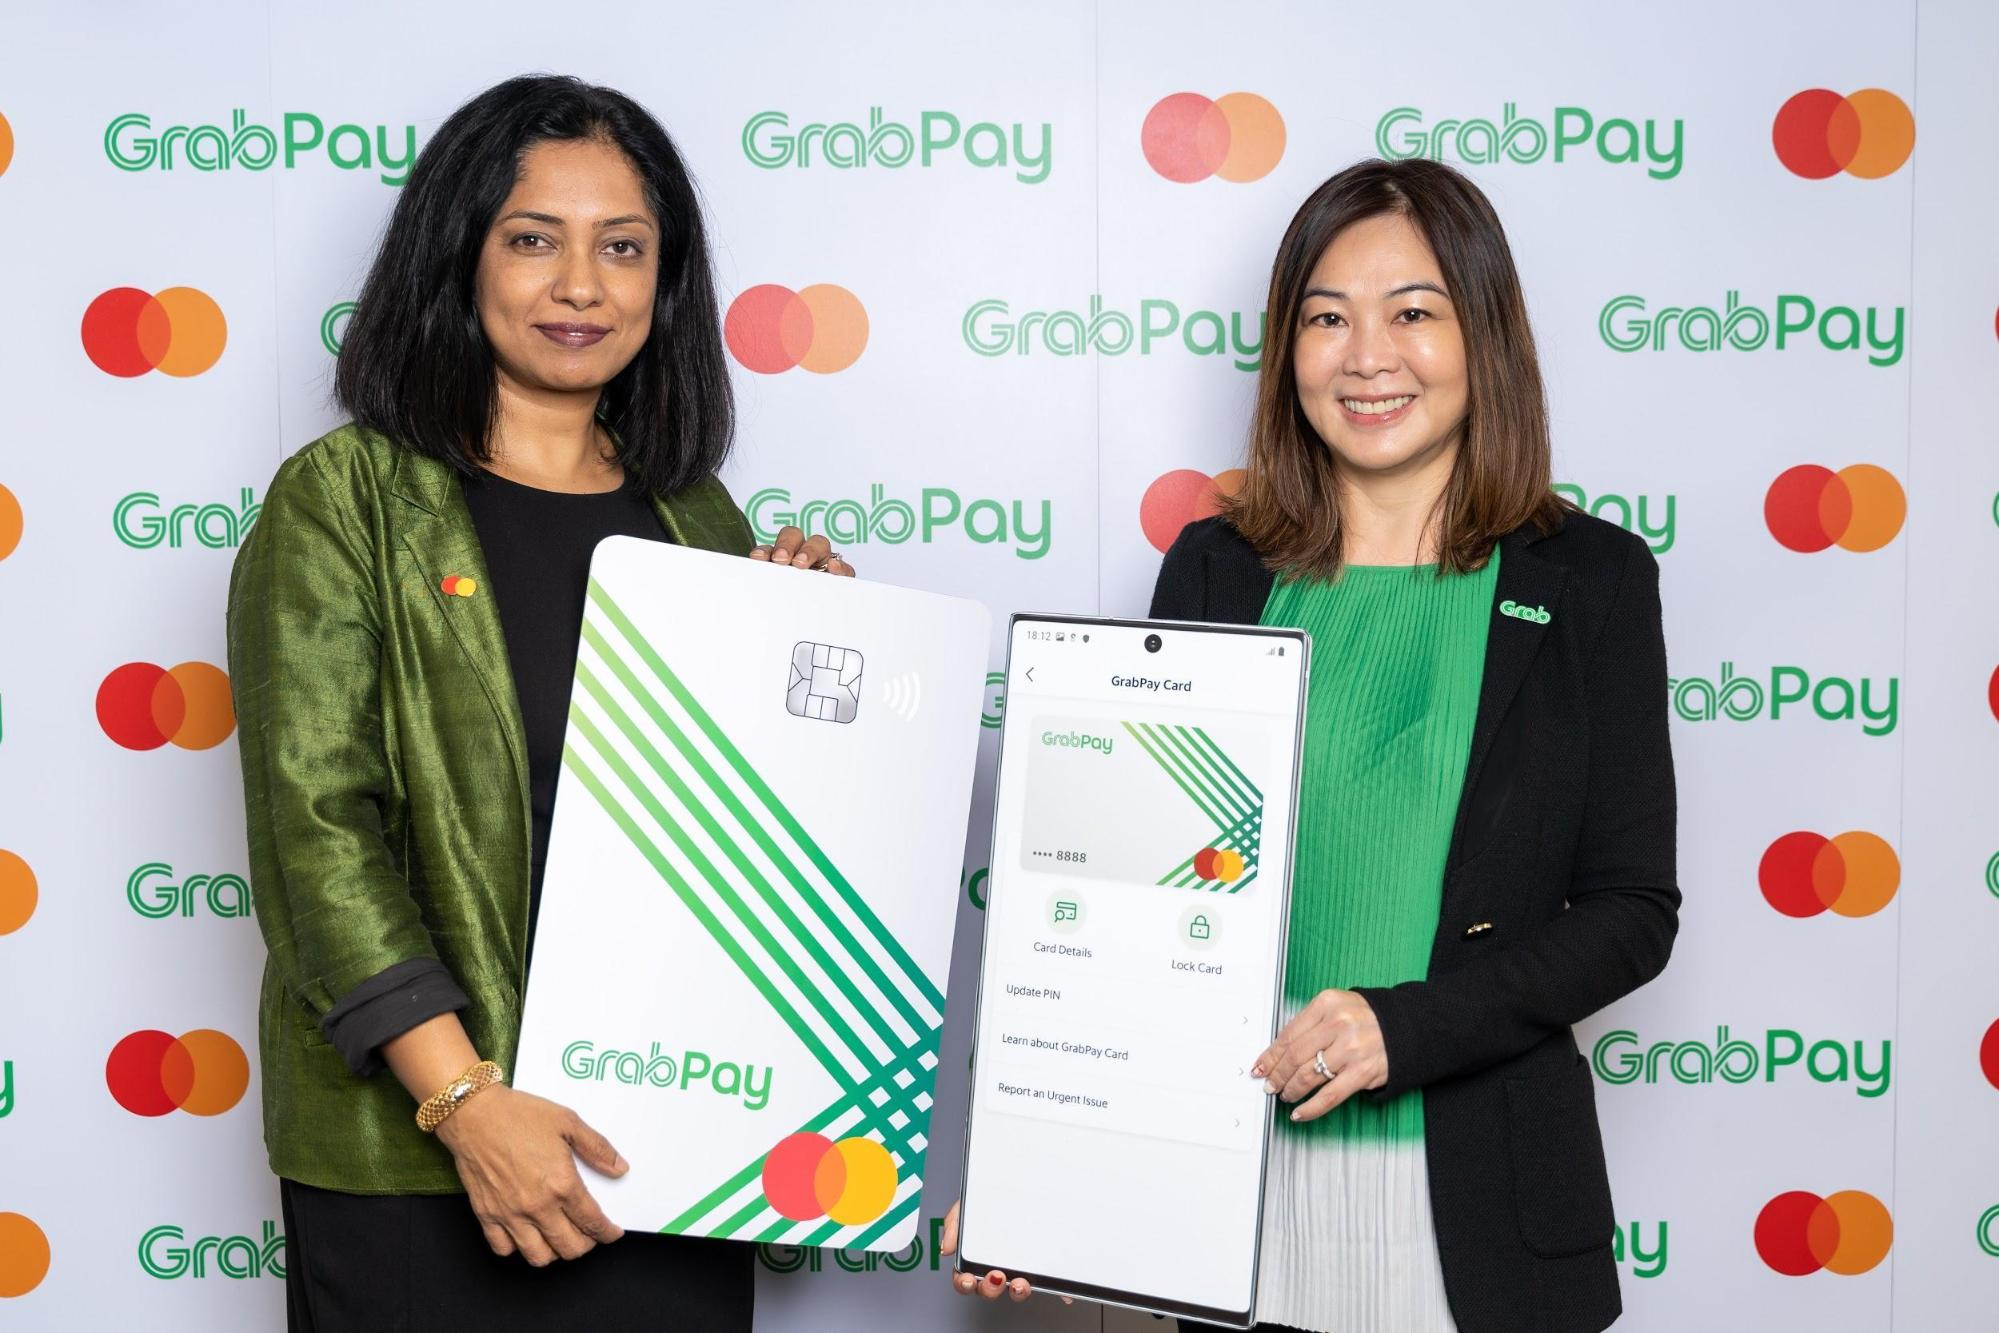 Rama Sridhar, Executive Vice President, Digital & Emerging Partnerships and New Payment Flows, Asia Pacific, Mastercard; with Huey Tyng Ooi, Managing Director, GrabPay. Photo courtesy: Grab